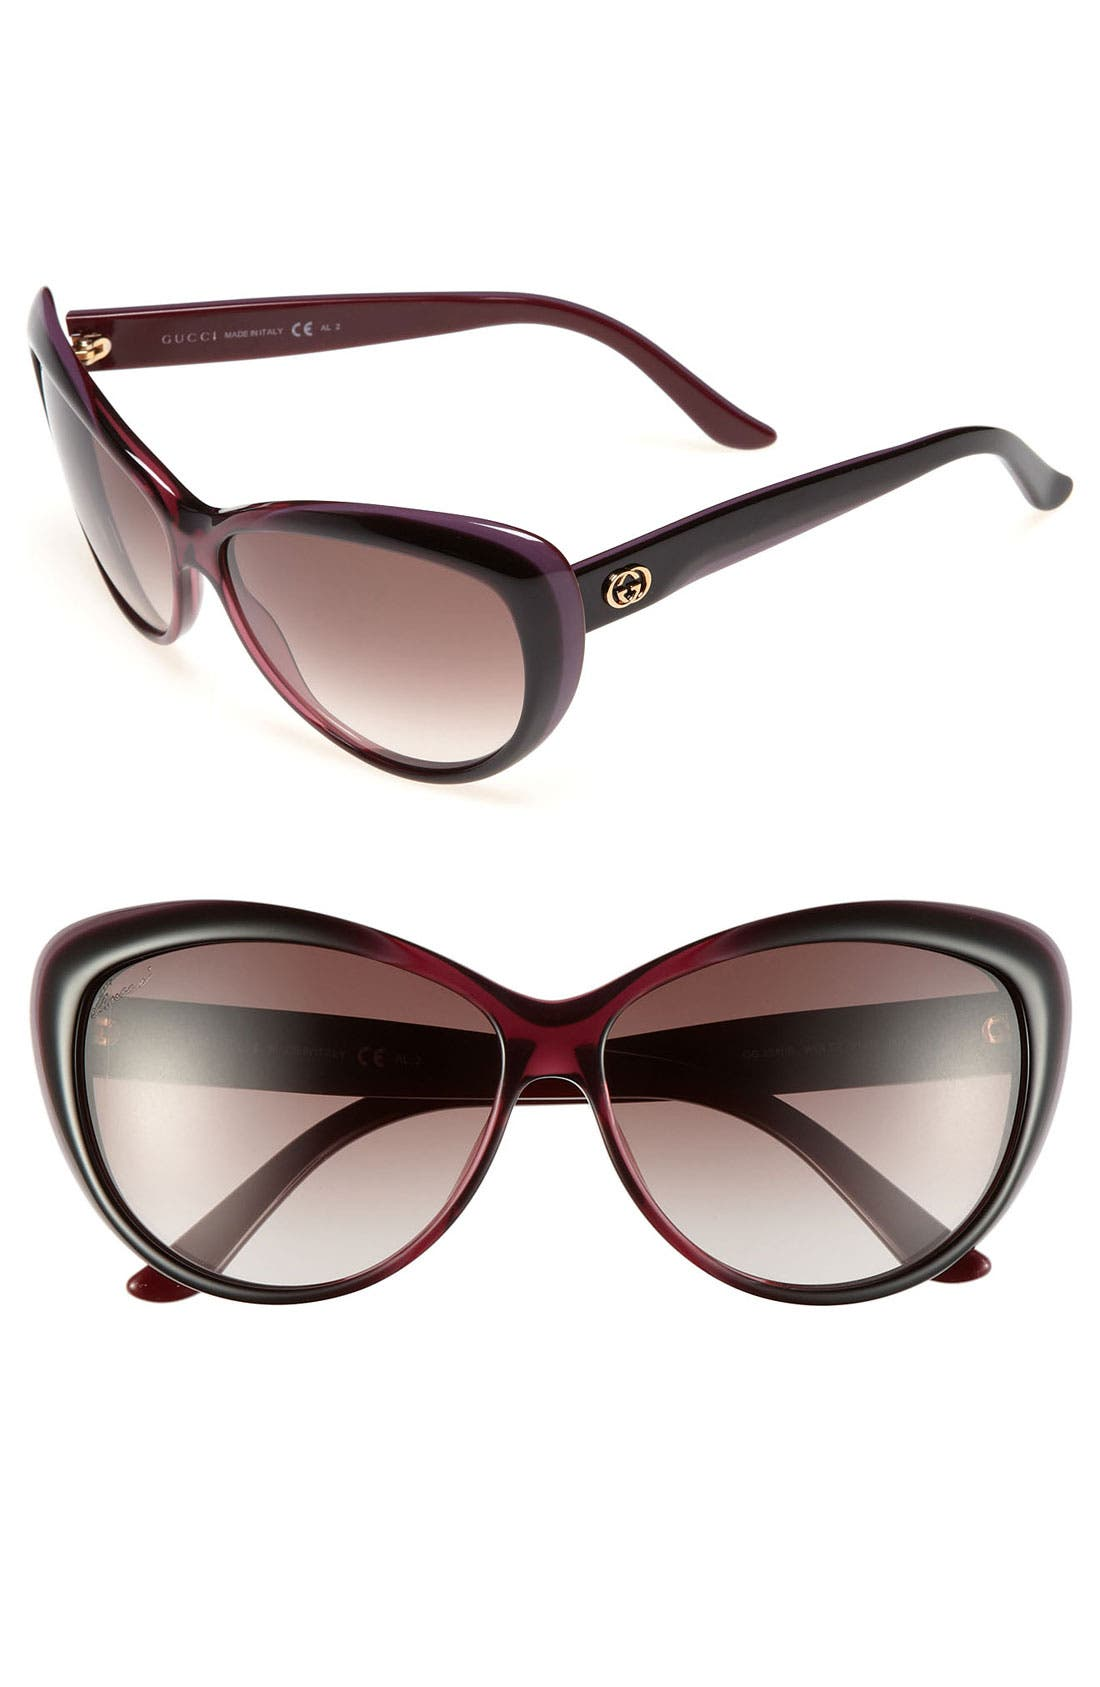 Alternate Image 1 Selected - Gucci 61mm Retro Sunglasses